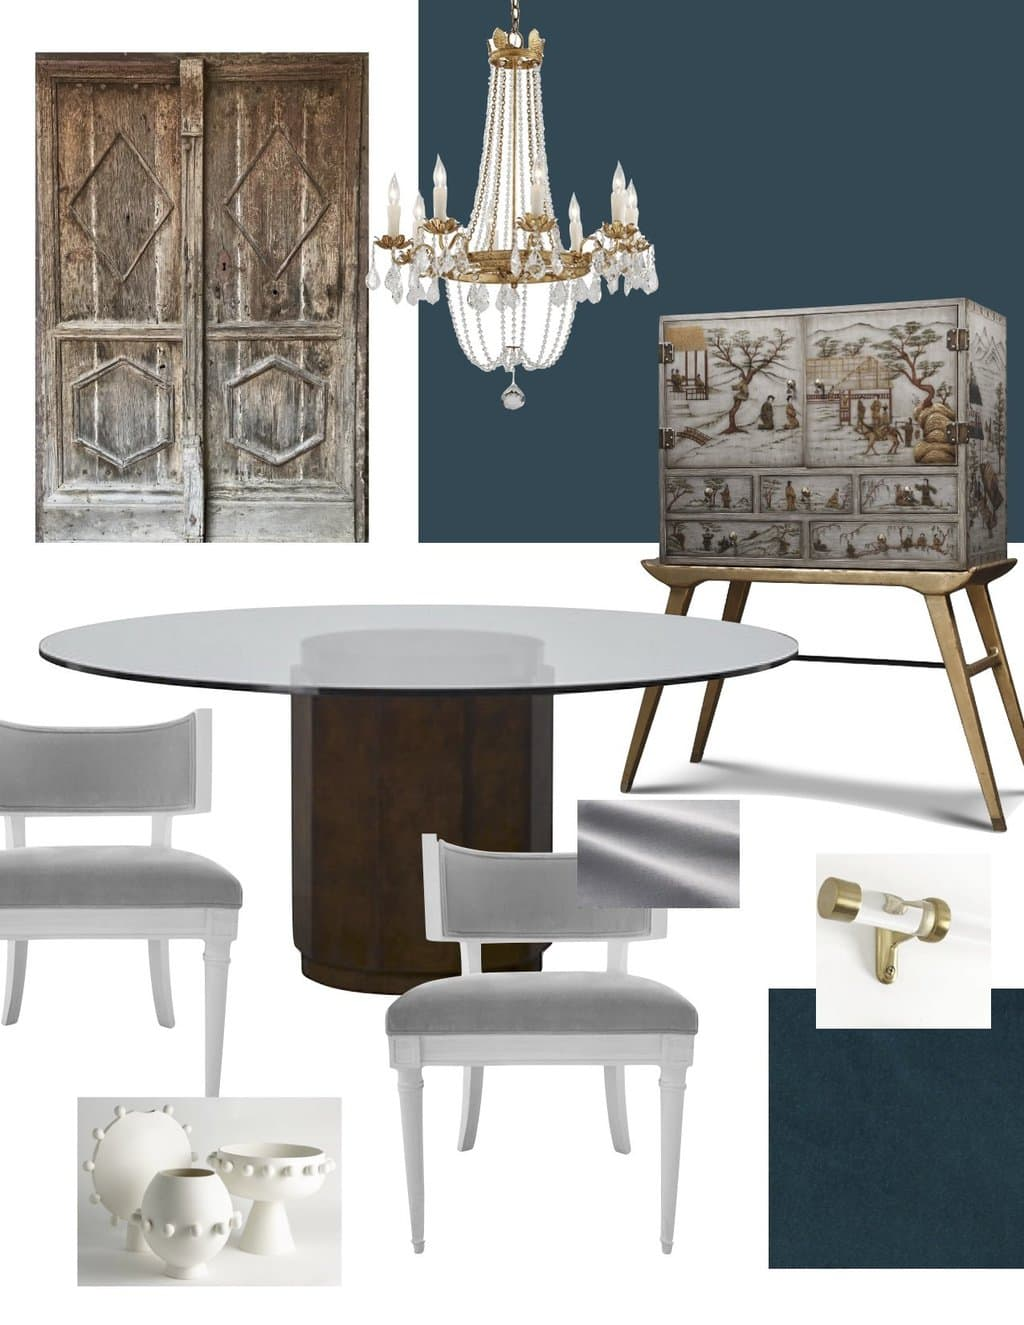 Dining room design board for the One Room Challenge by Kevin O'Gara with crystal chandelier, round pedestal table, Klismos chairs, and antique French doors  on Thou Swell